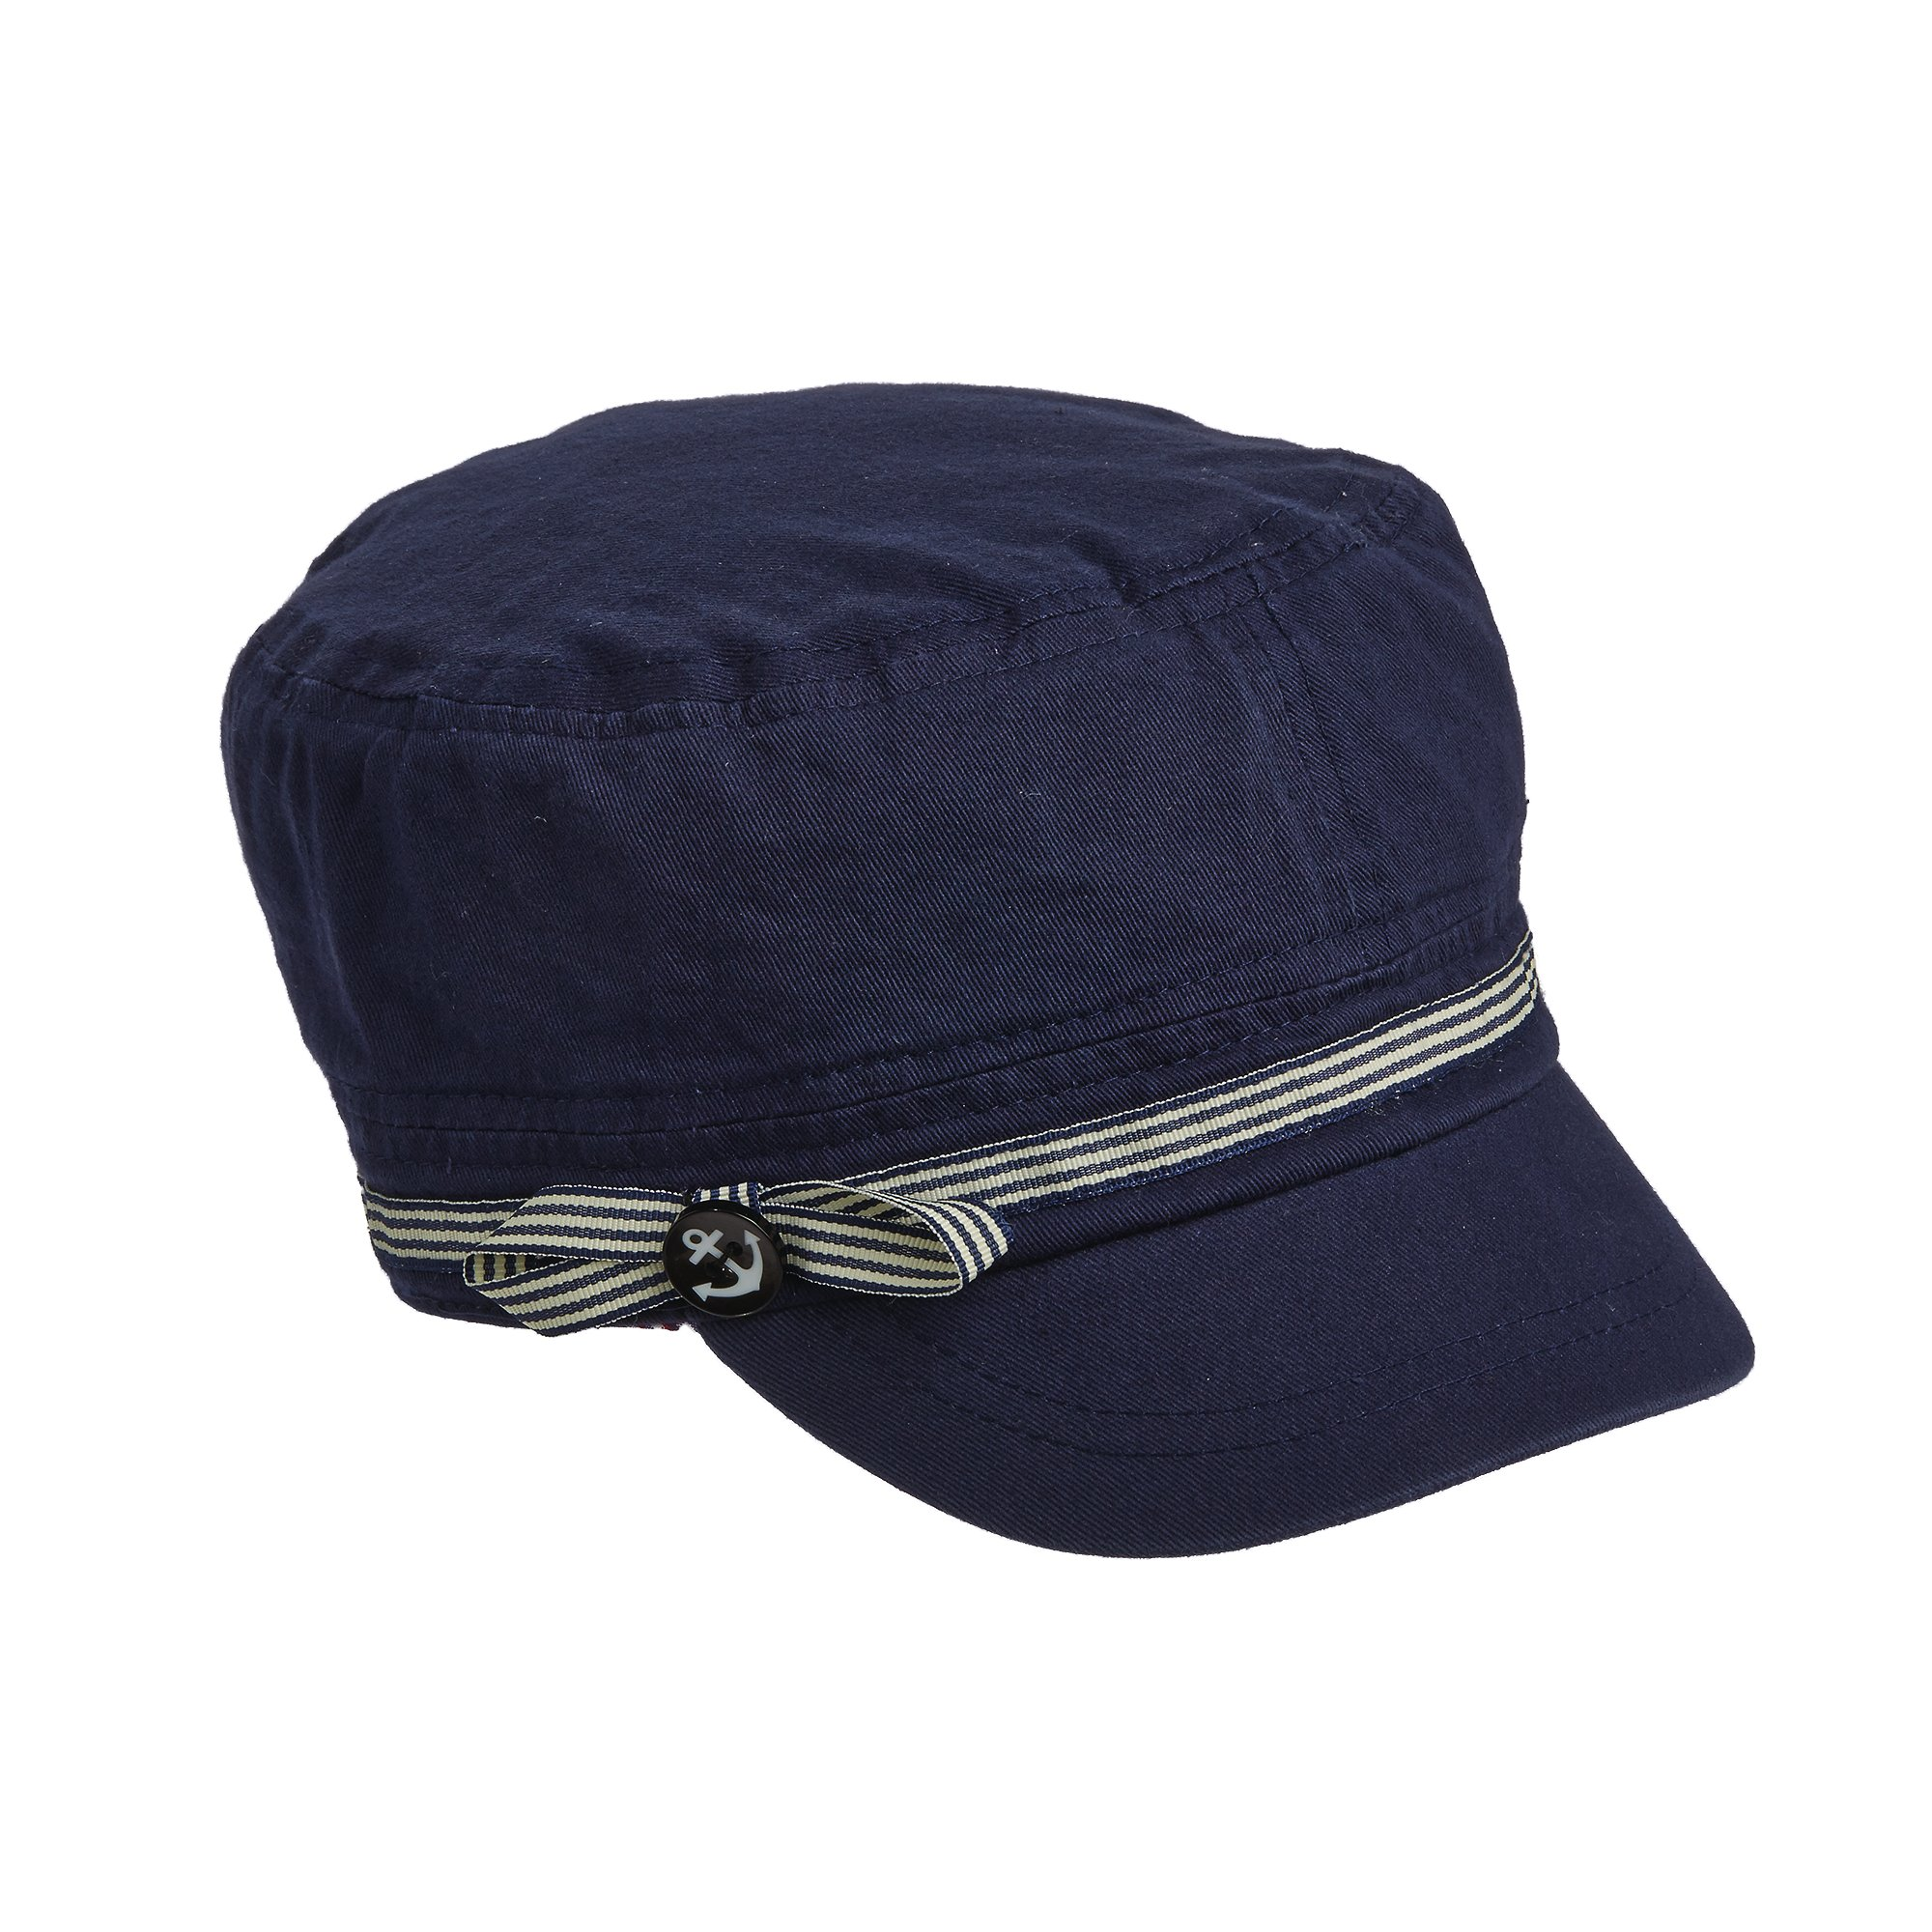 TROPICAL TRENDS CADET WITH ANCHOR BUTTON (NAVY)